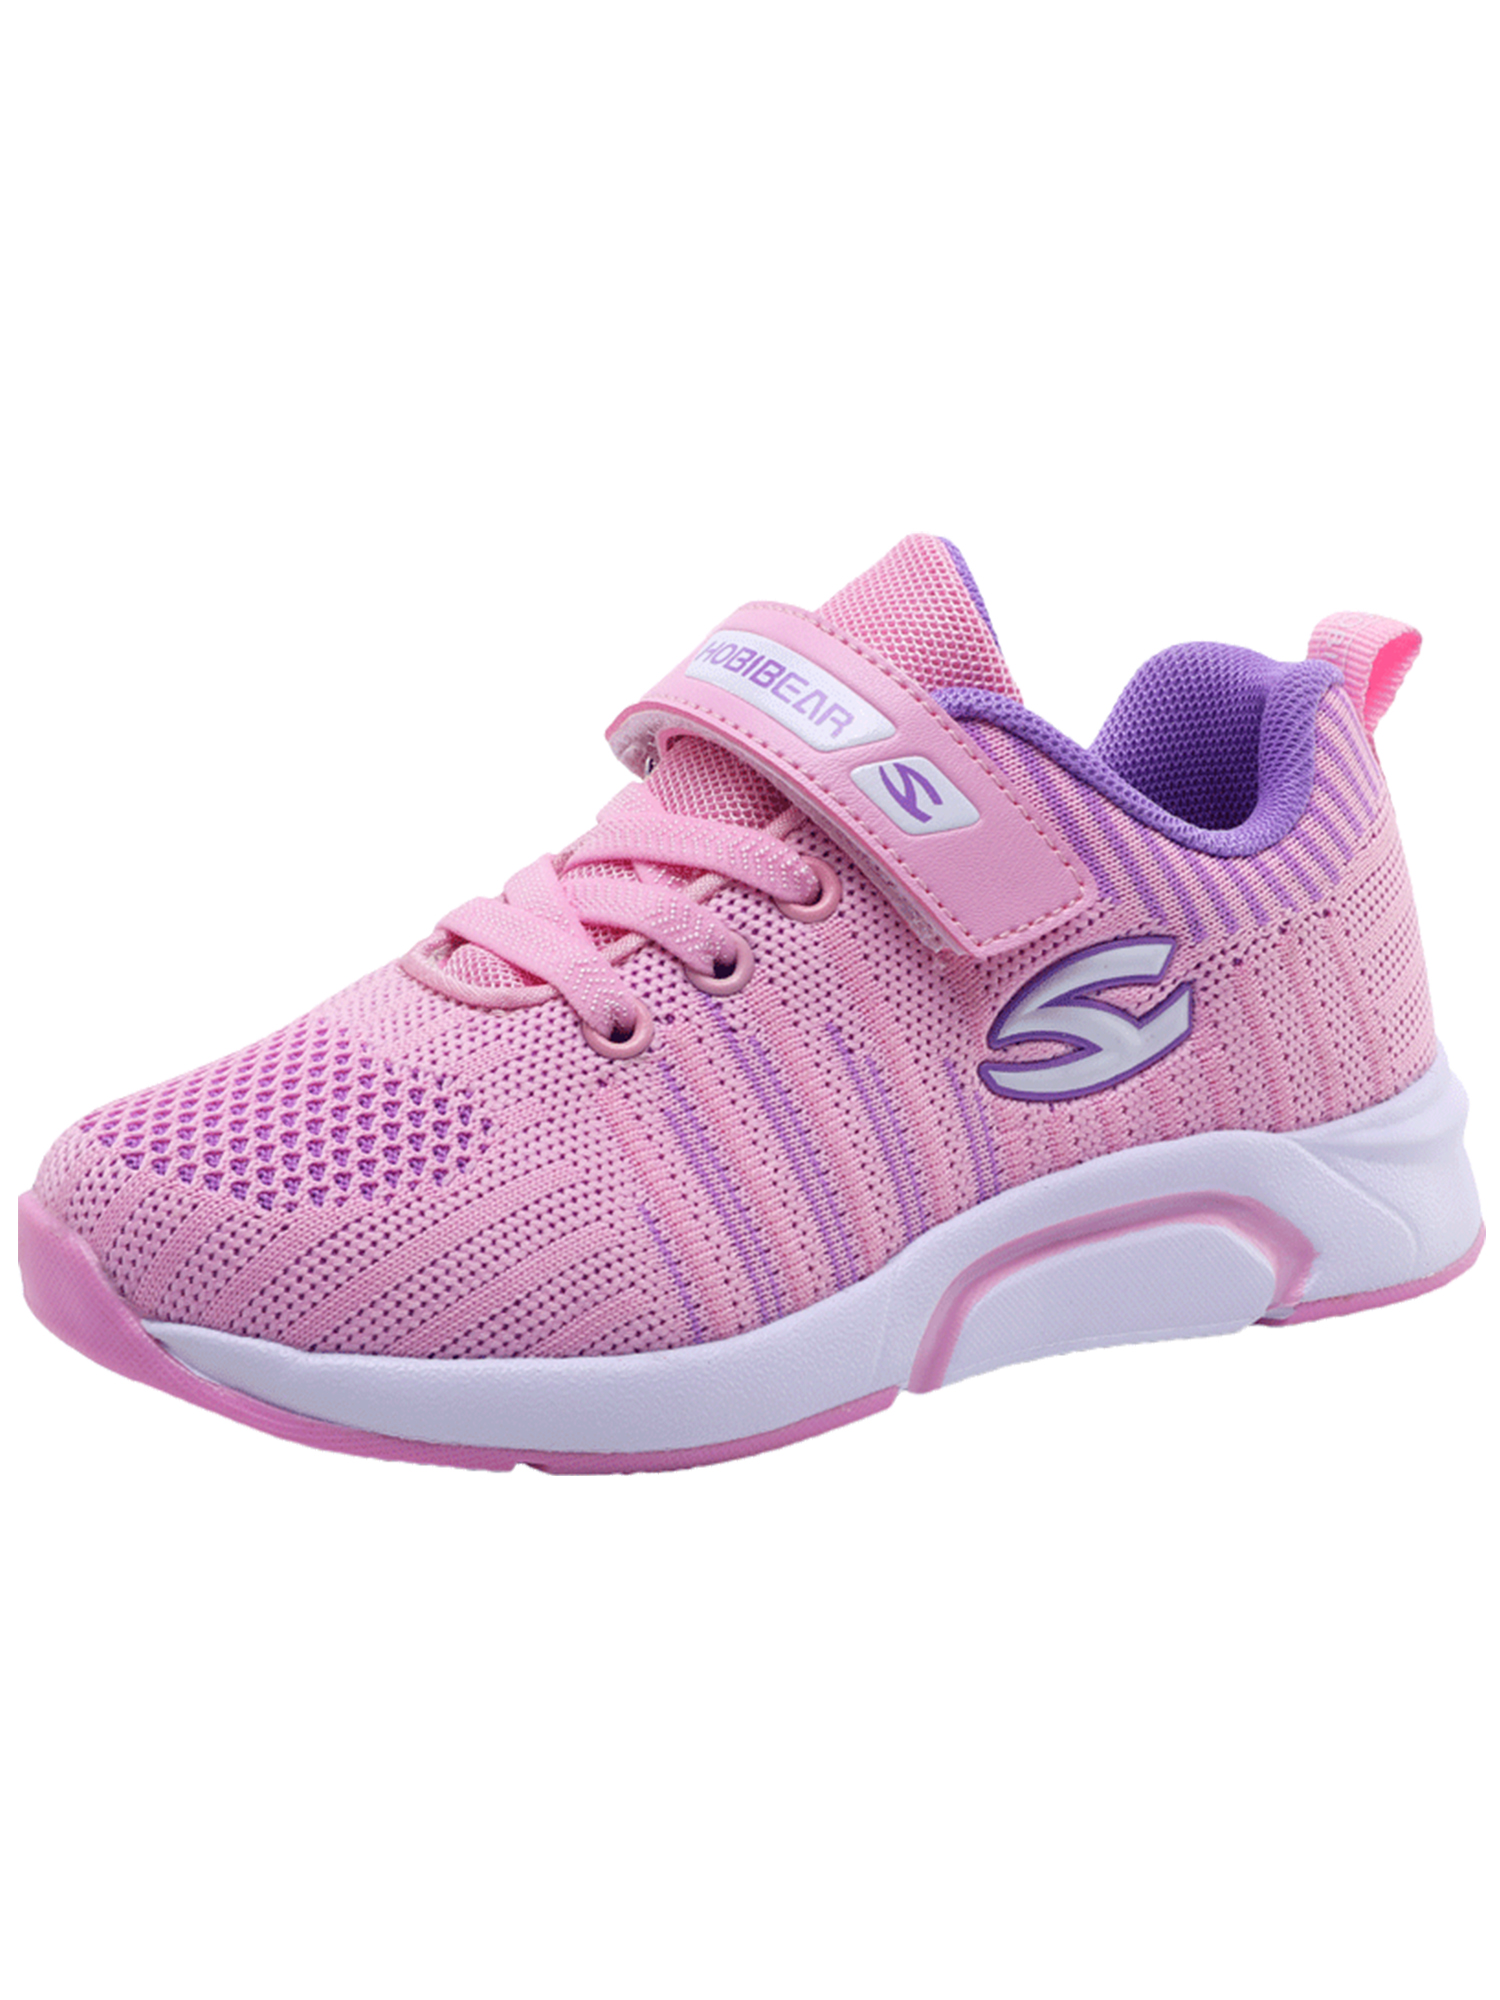 Kids Breathable Knit Sneakers Lightweight Mesh Athletic Running Shoes(Toddler/Little Kid/Big Kid)